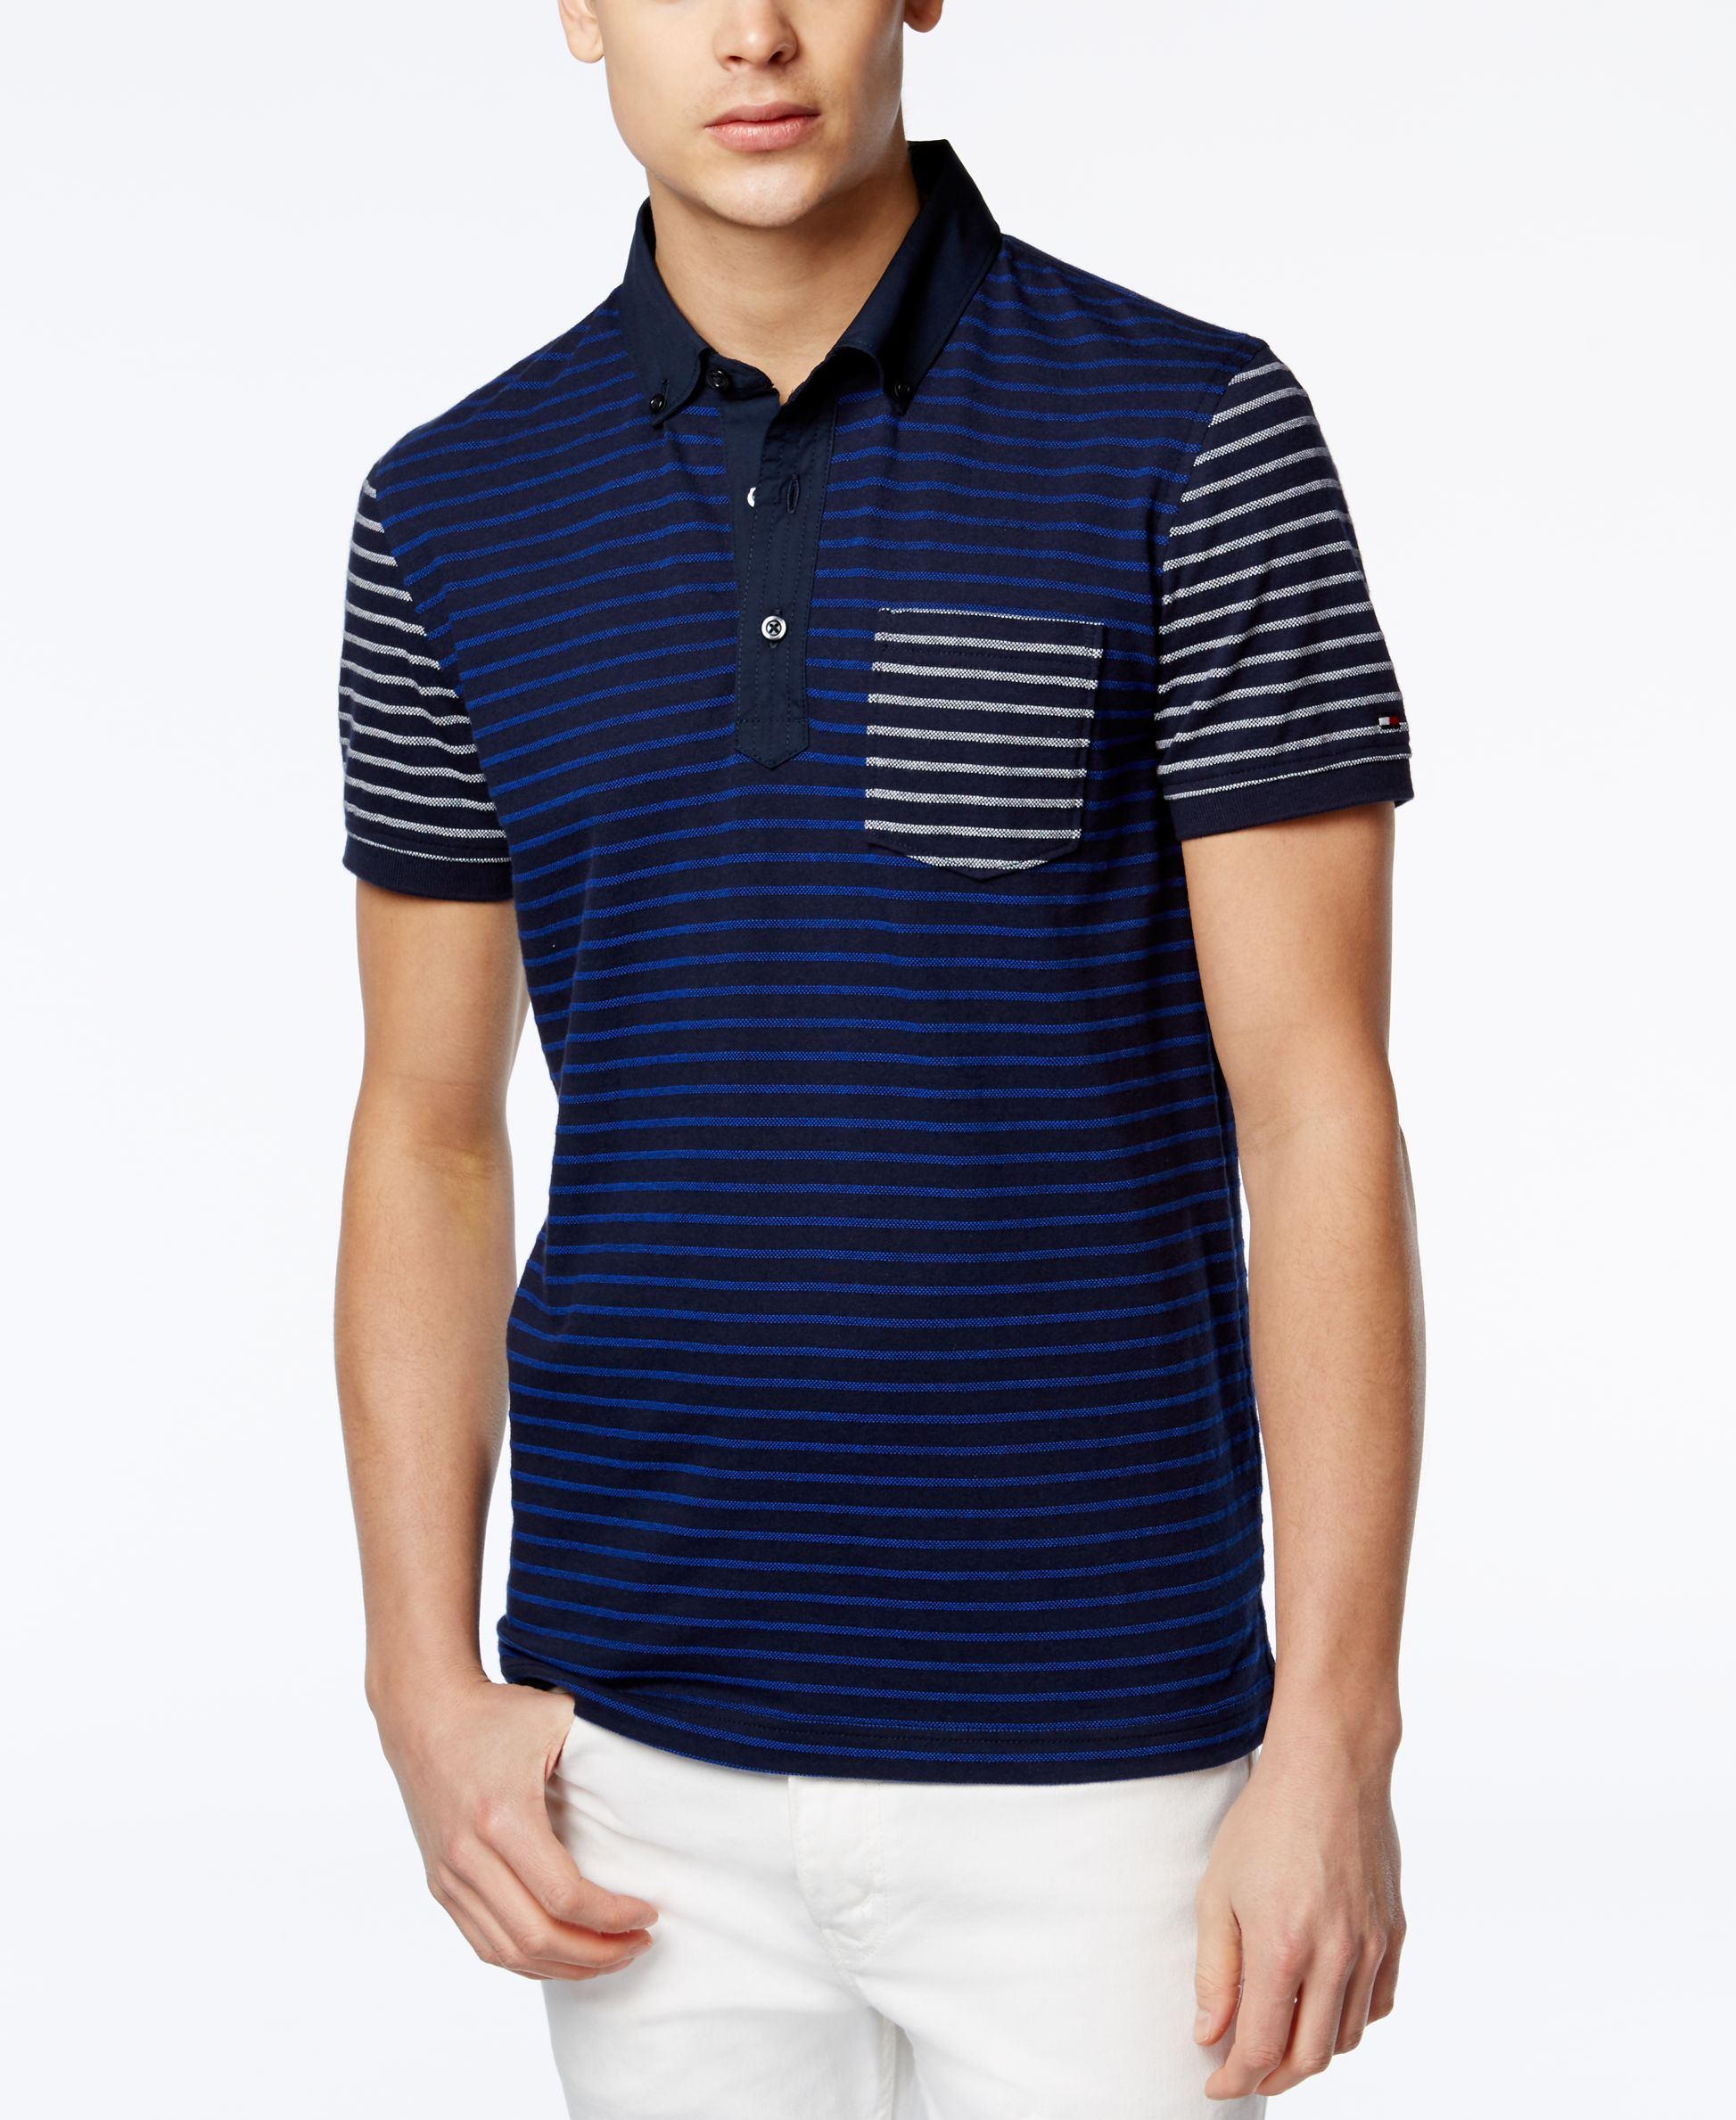 The best polo shirts for men - Best Designer Polo Shirts Tommy Hilfiger Bently Polo Shirt Follow Rickysturn